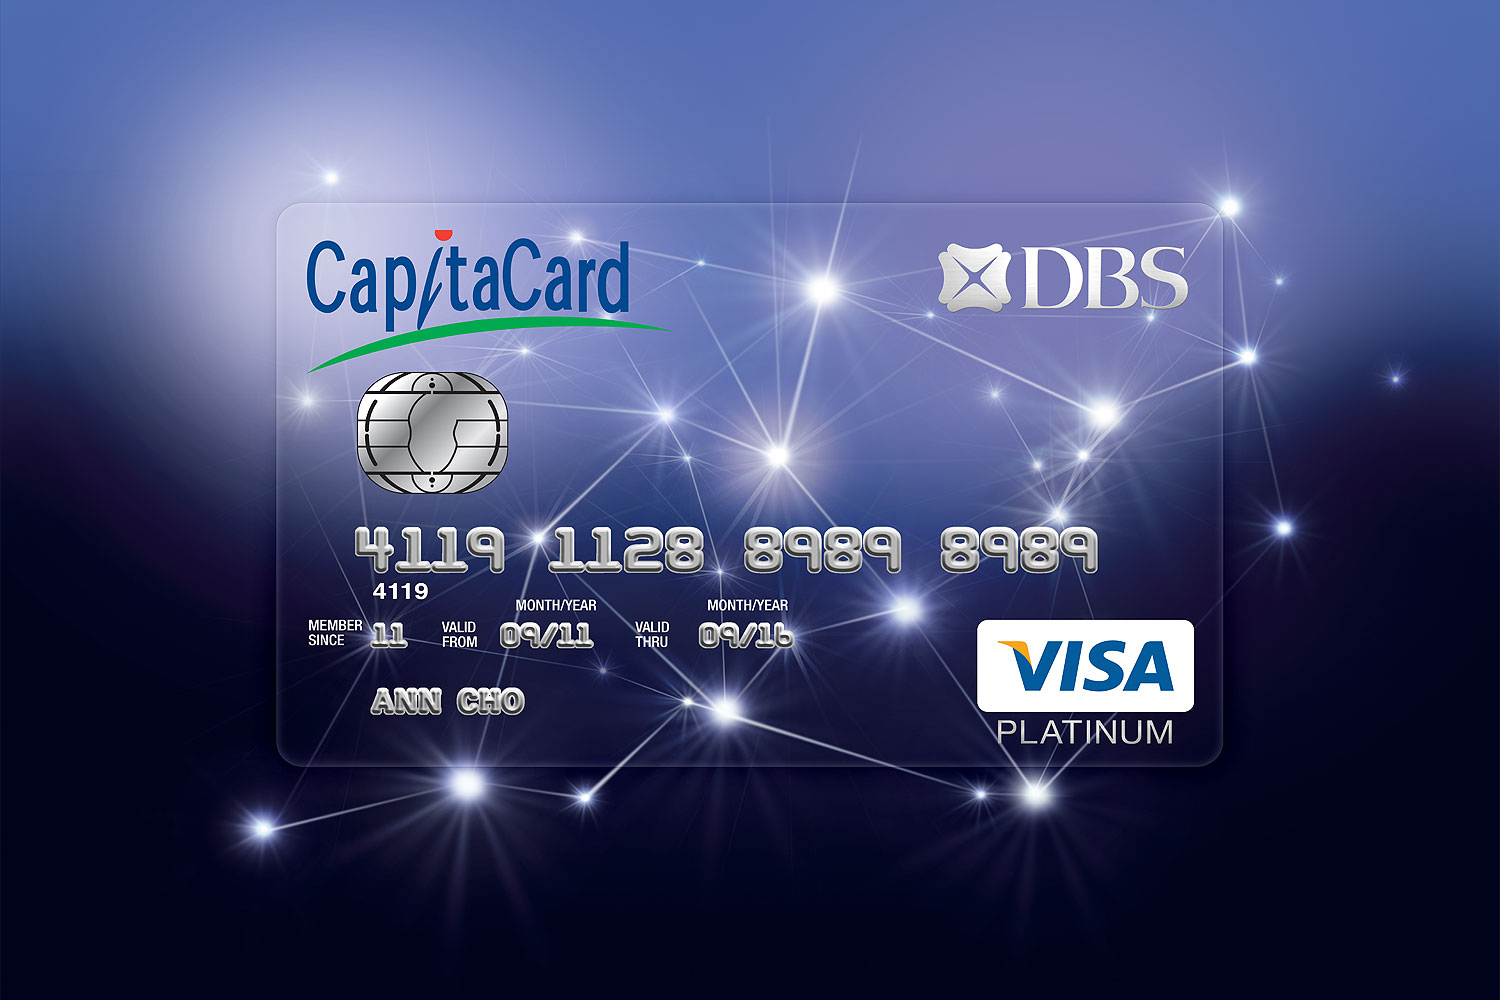 DBS CapitaCard SG branding identity advertising key visual illustration design by Singapore based brand strategy and creative design consultancy, BÜRO UFHO.